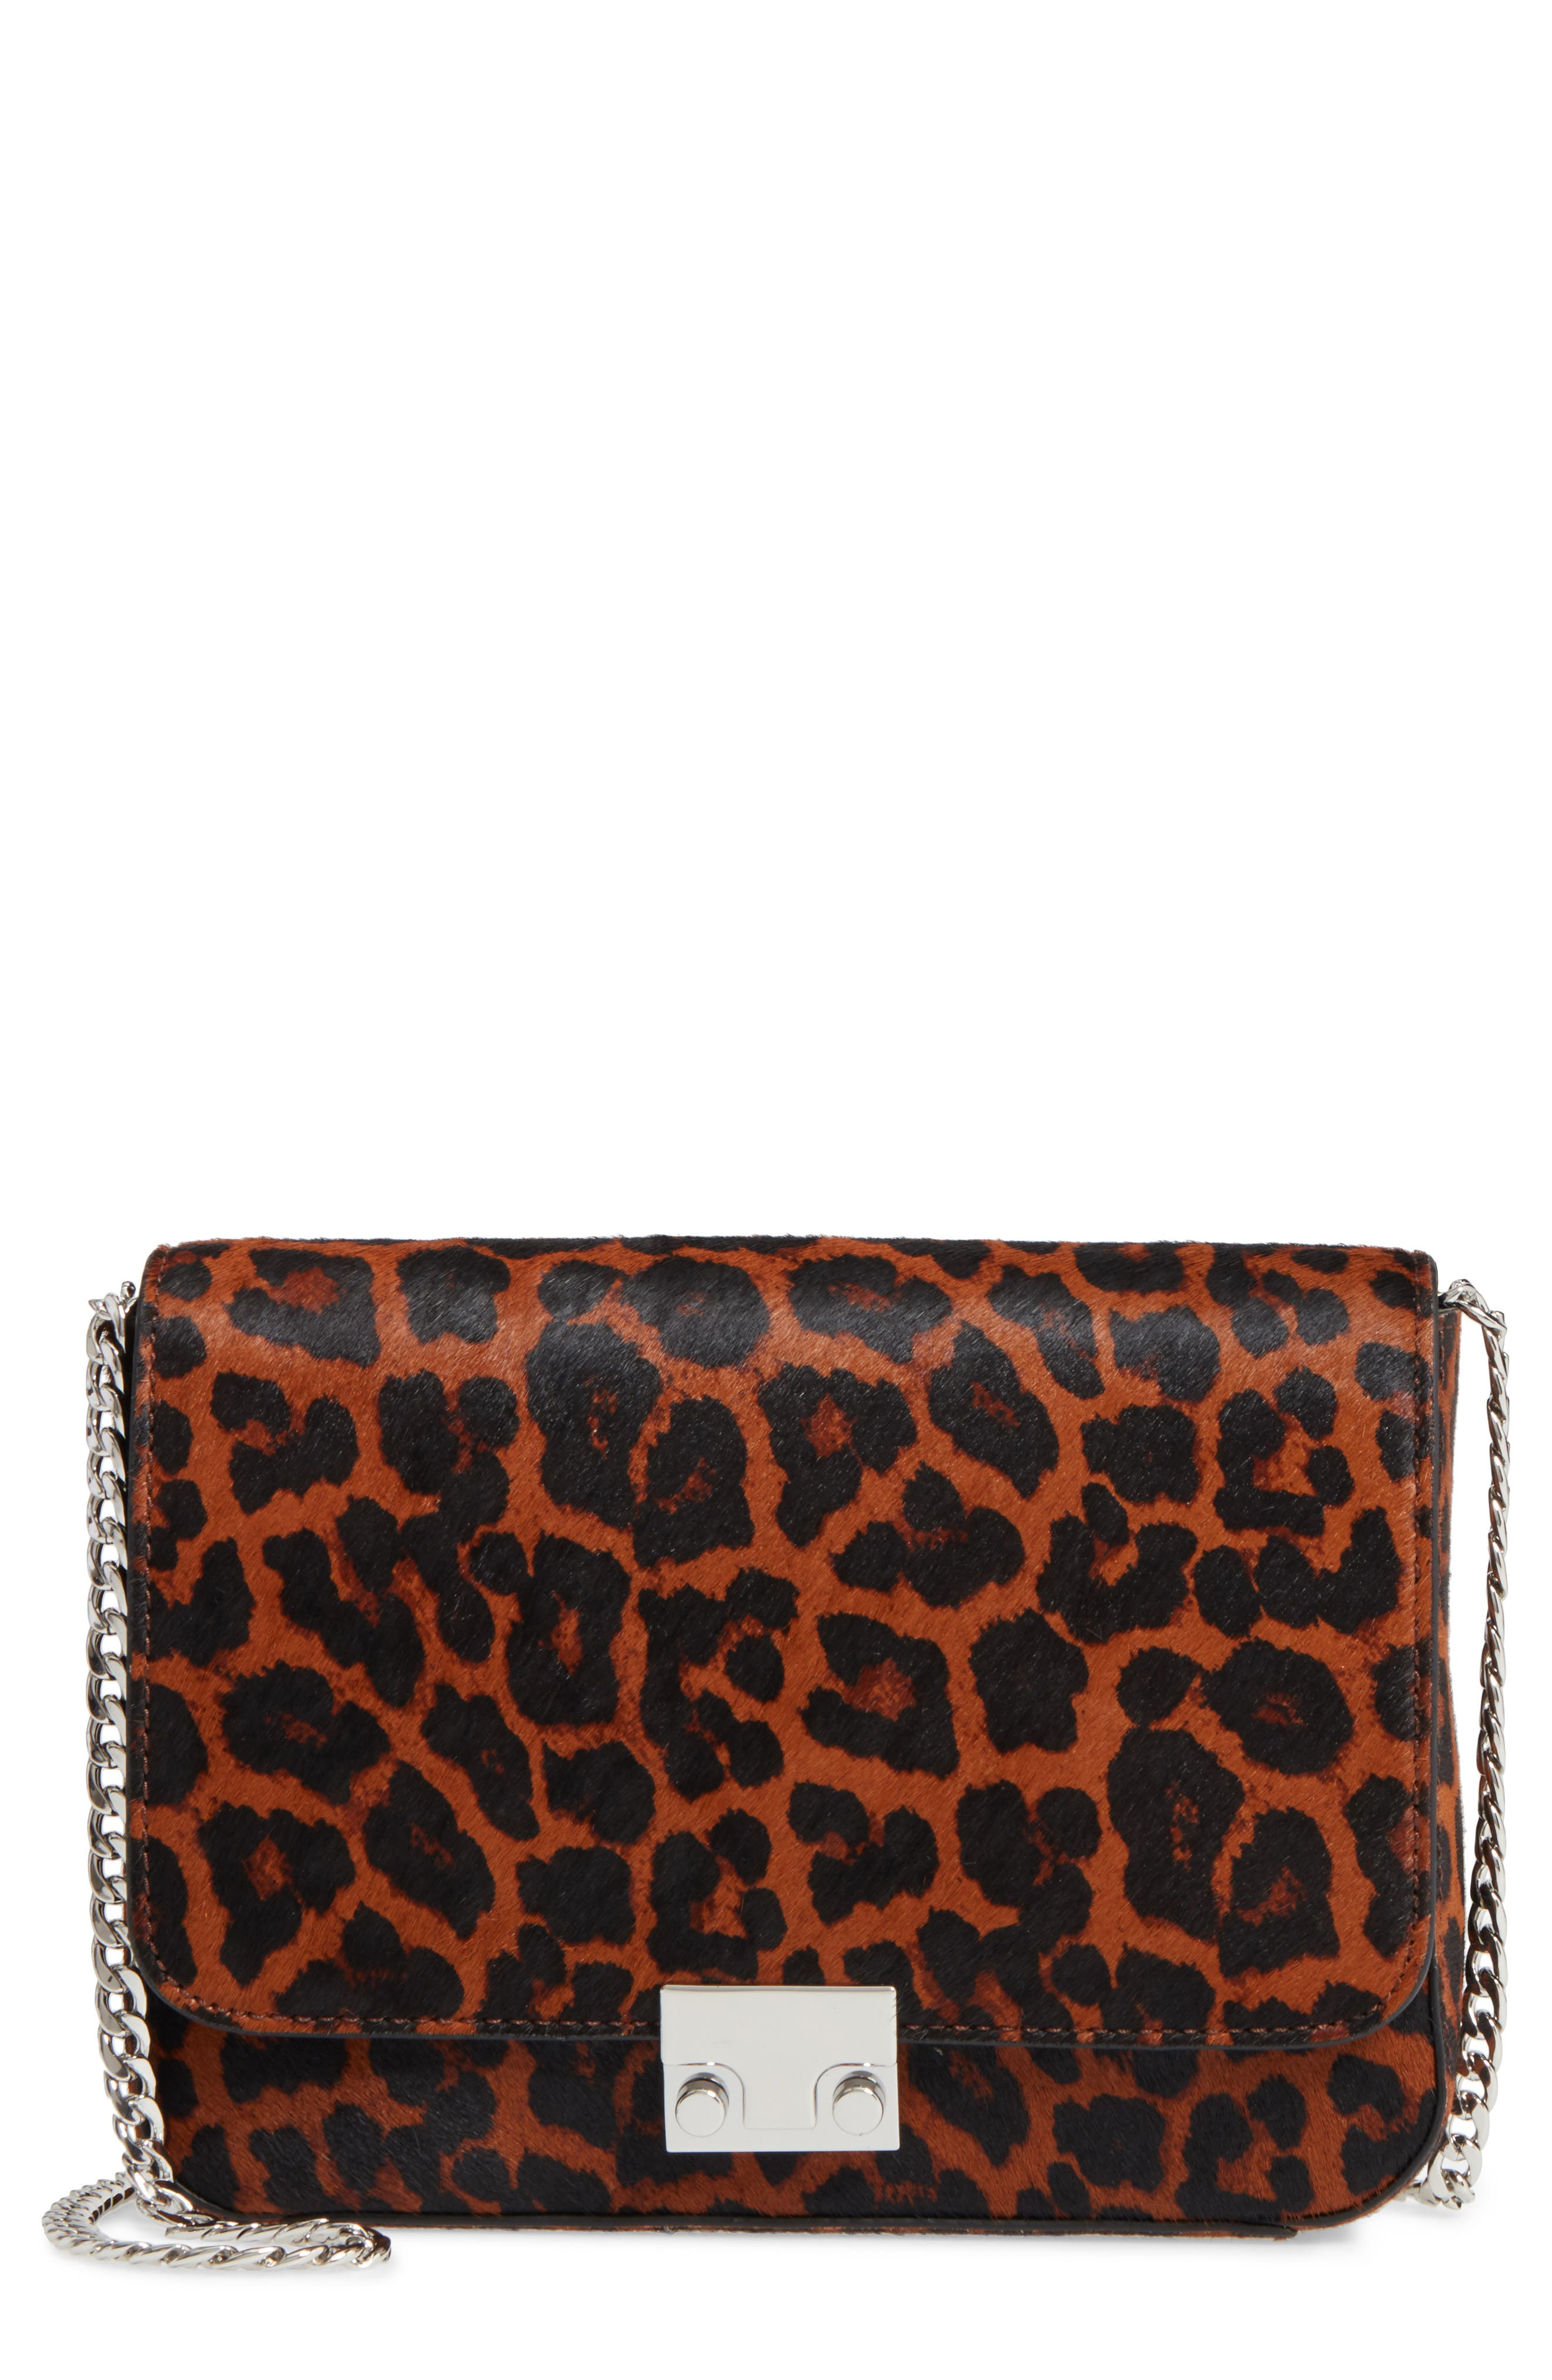 Alternate Image 1 Selected - Loeffler Randall Lock Genuine Calf Hair Shoulder Bag